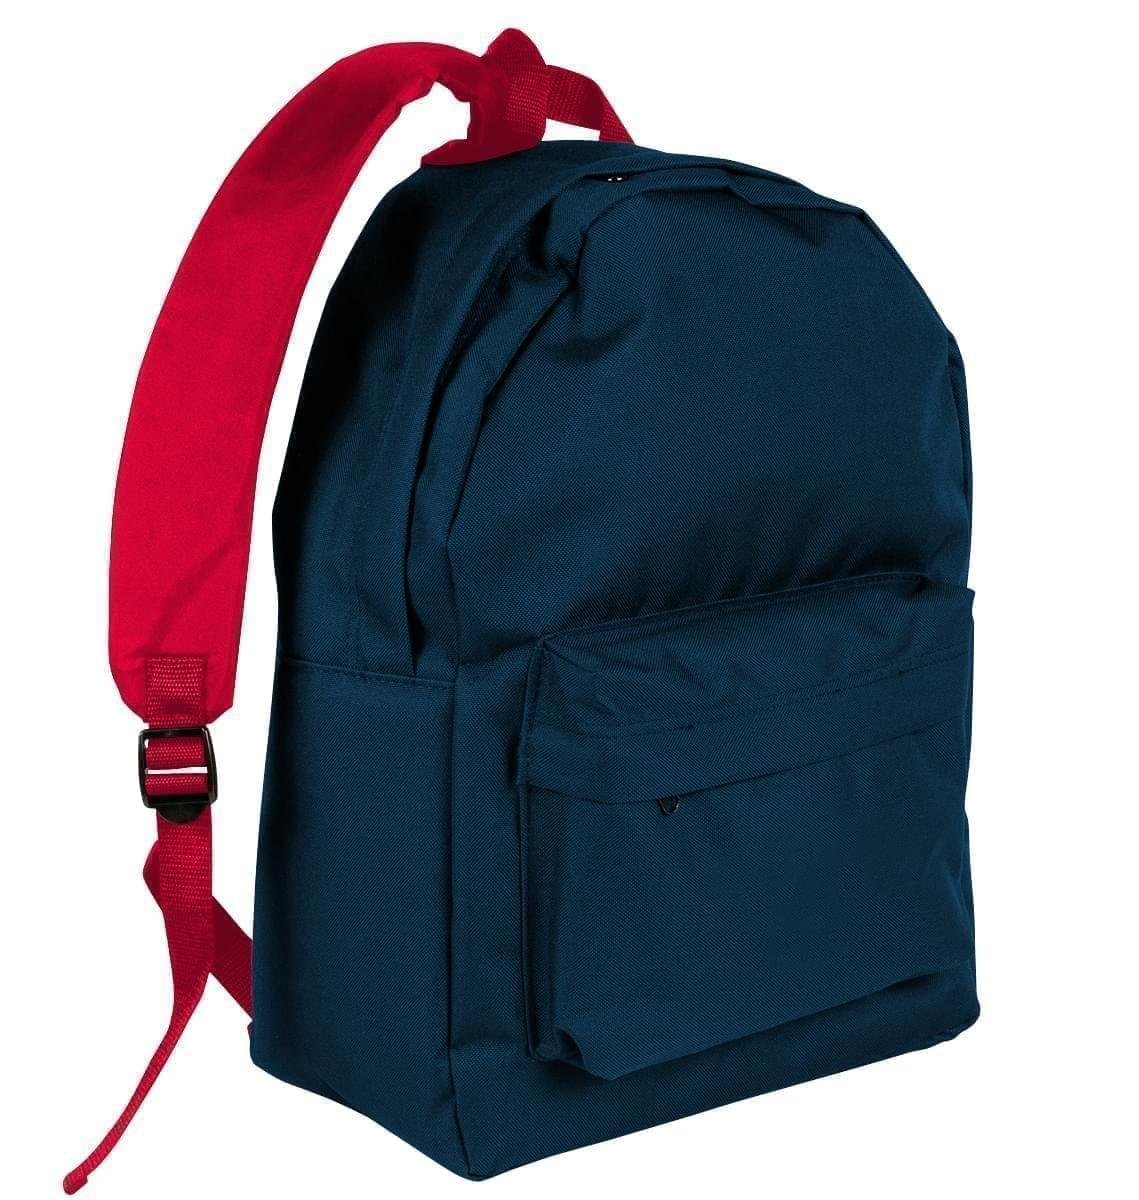 USA Made Nylon Poly Backpack Knapsacks, Navy-Red, 8960-AW2